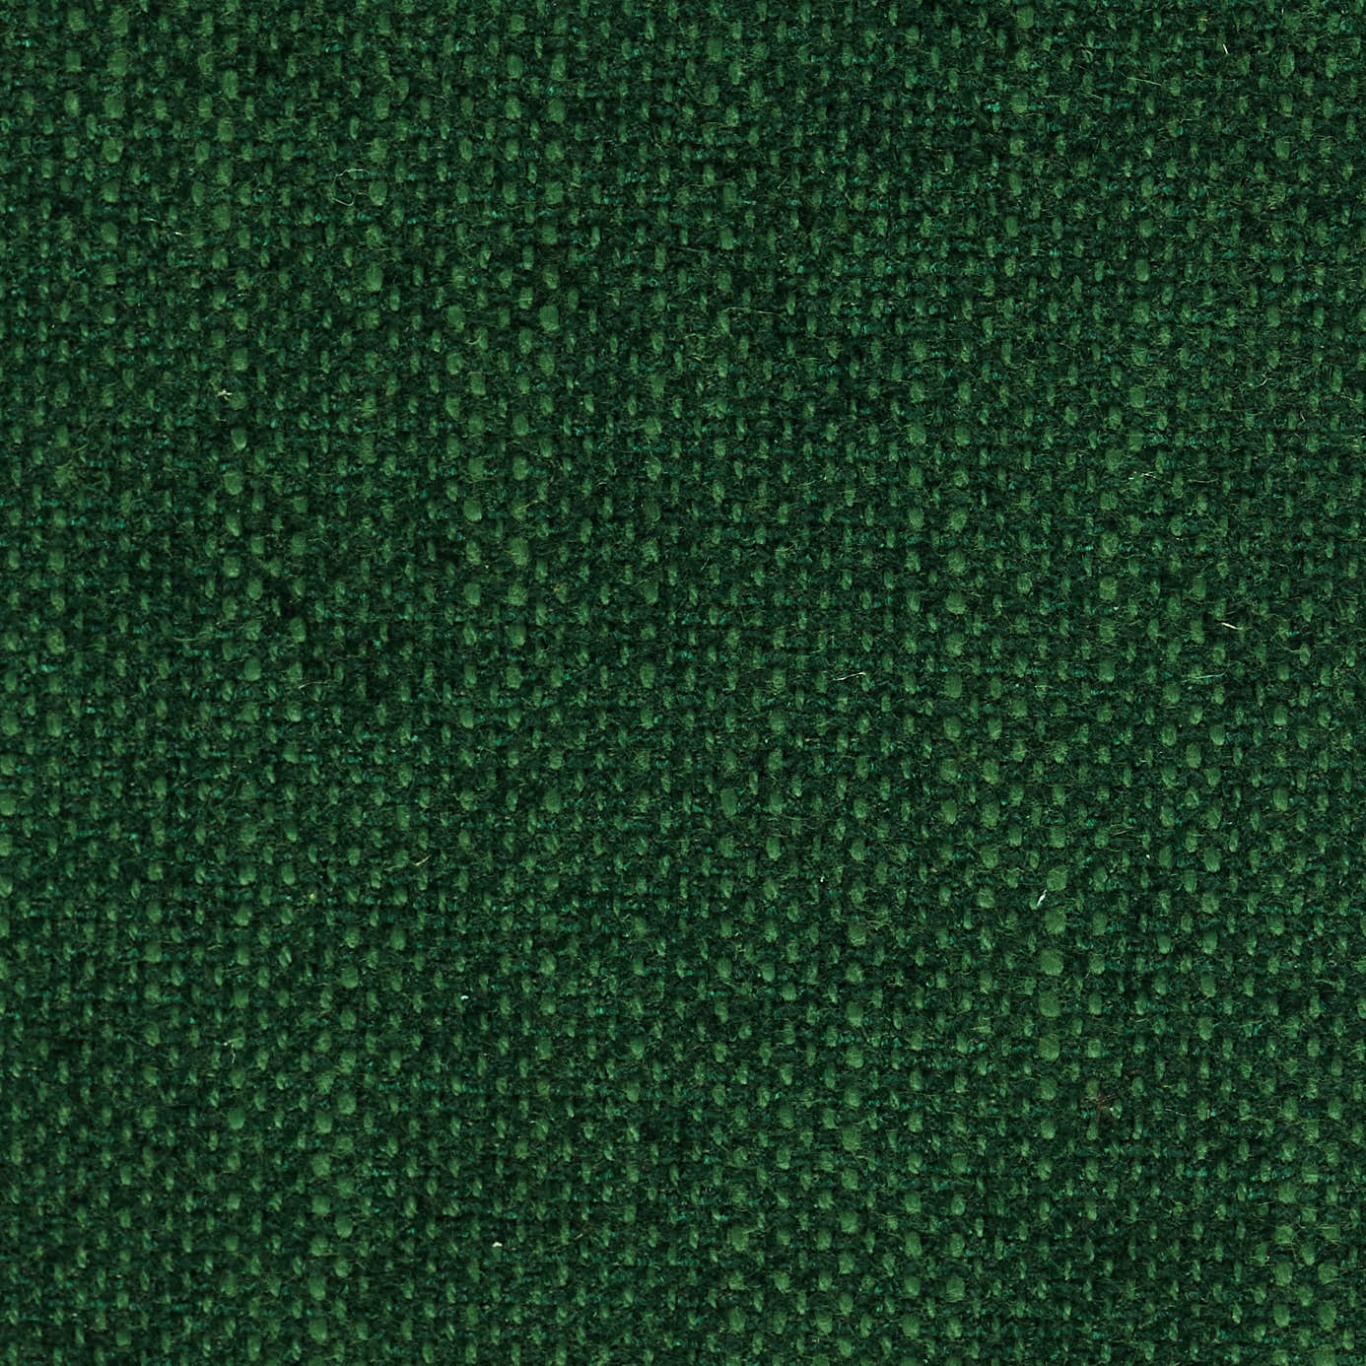 Image of Harlequin Molecule Evergreen Fabric 440059